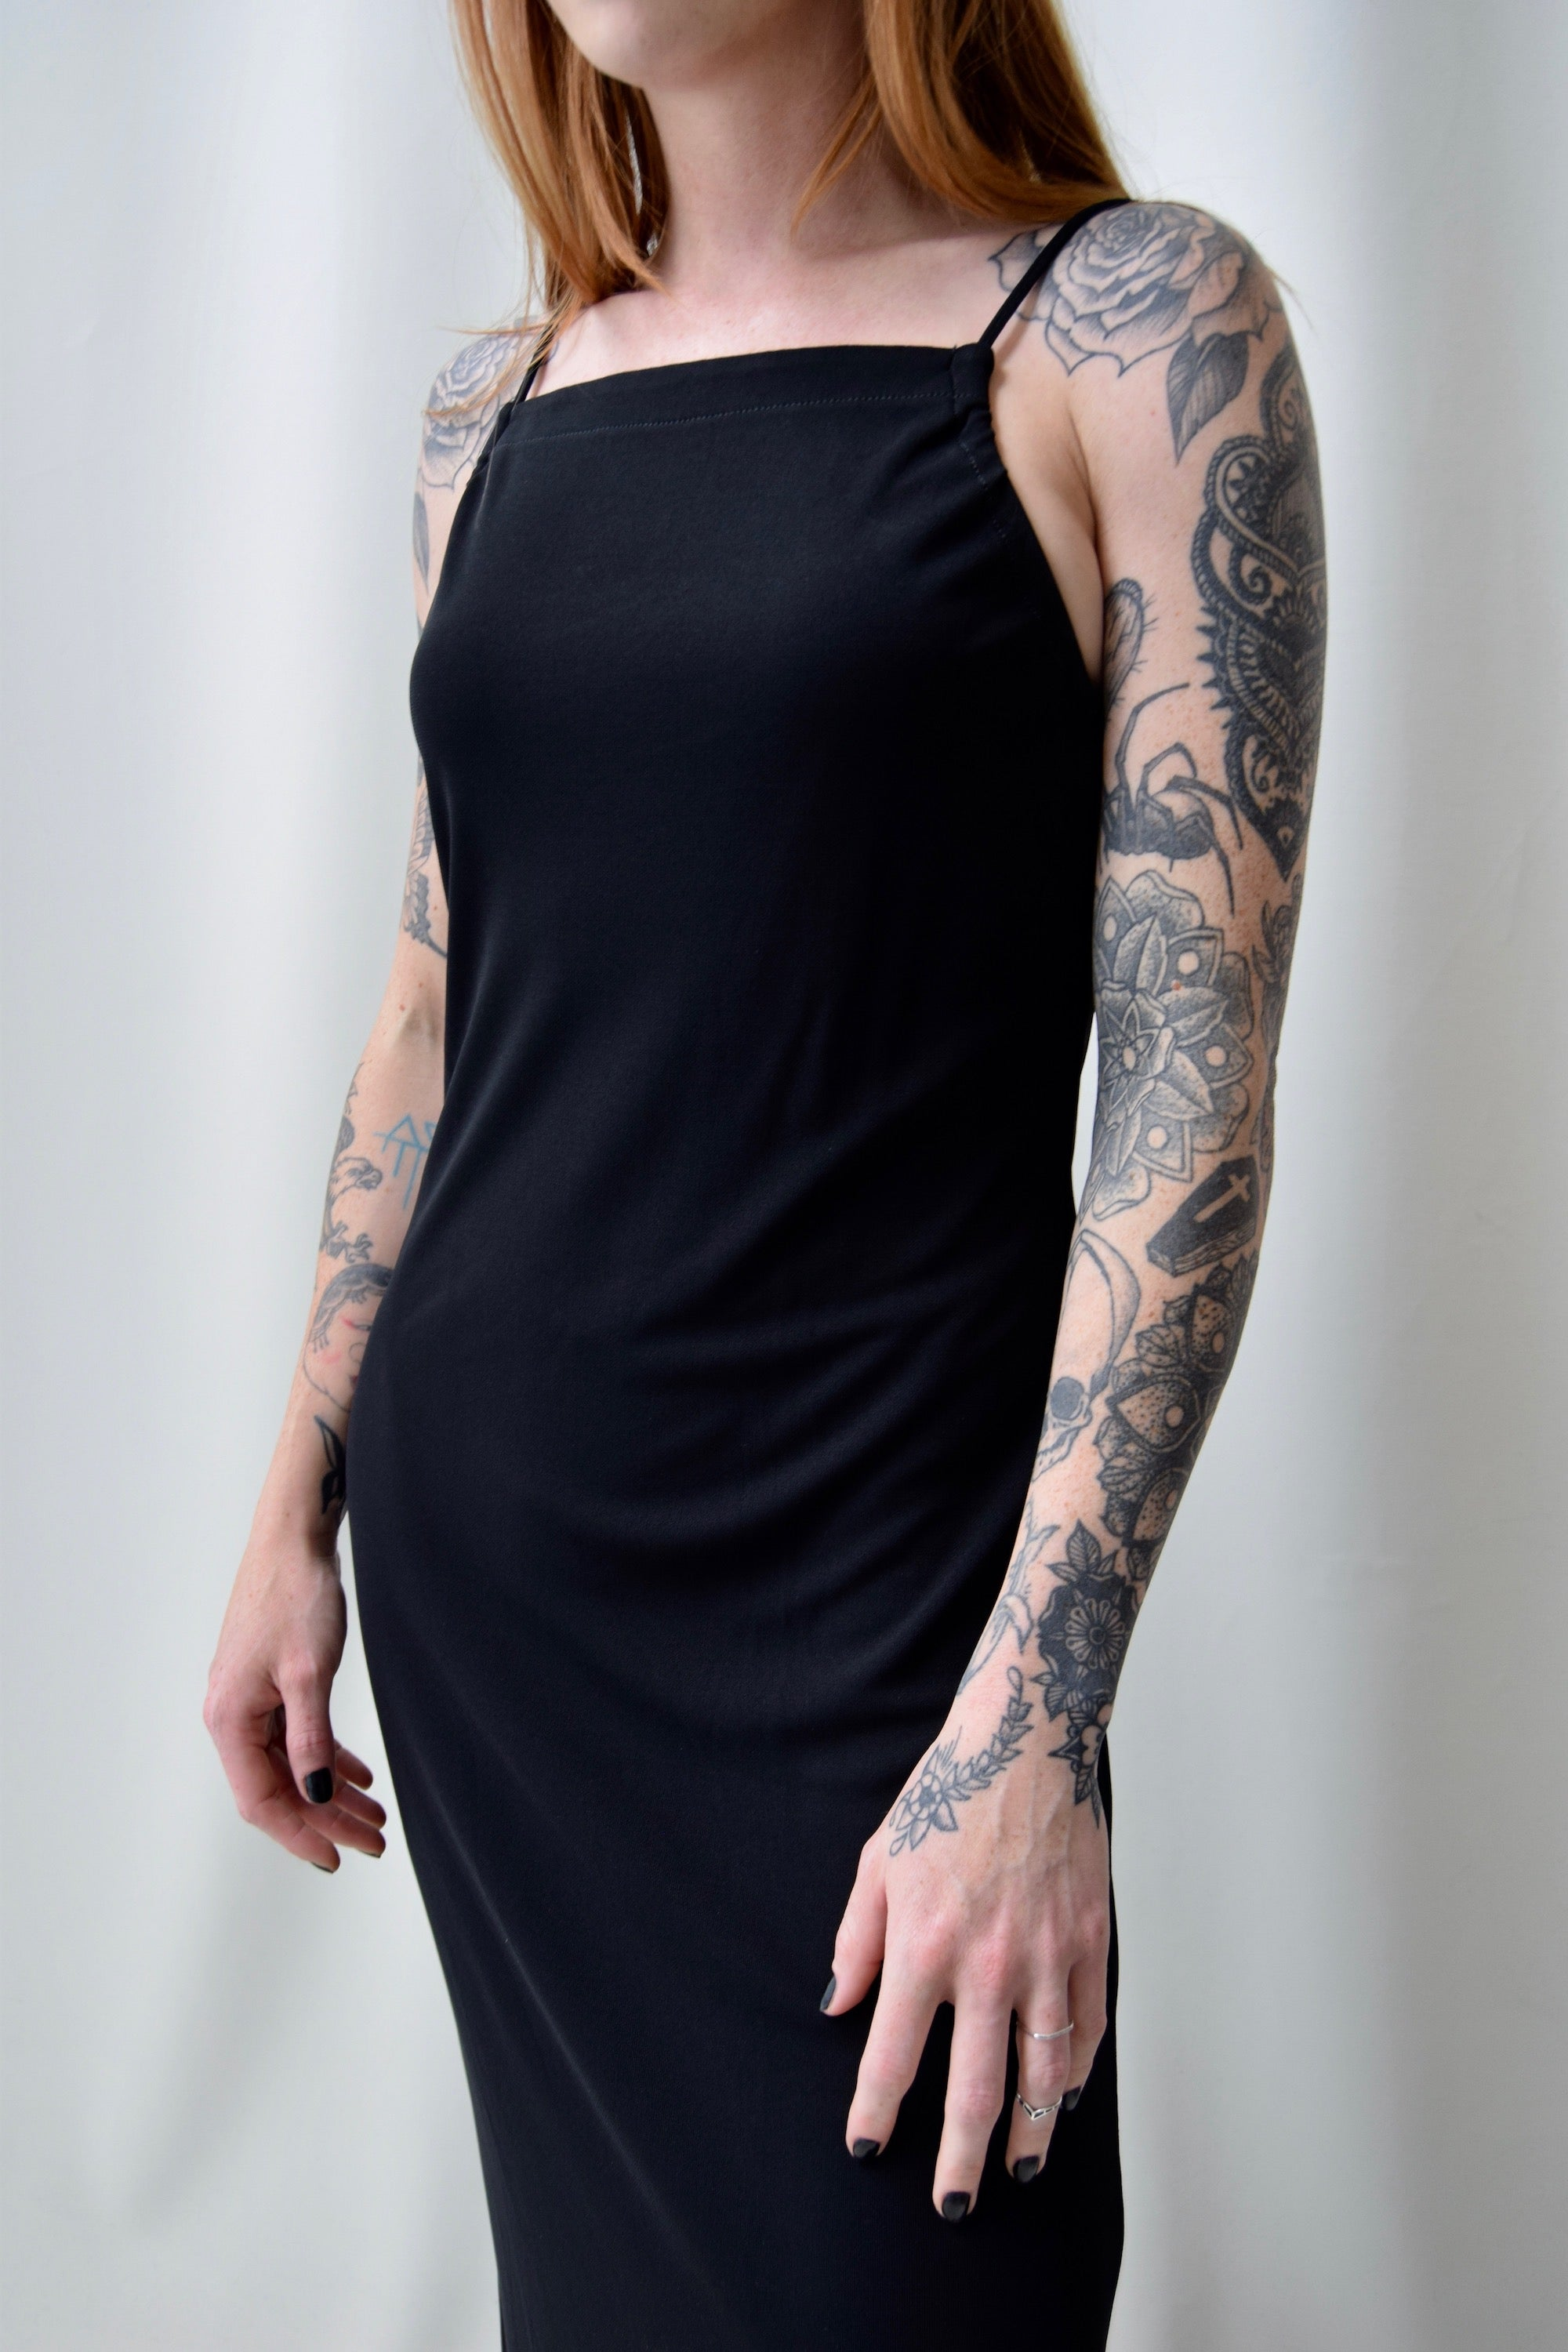 90's Slinky Black Dress